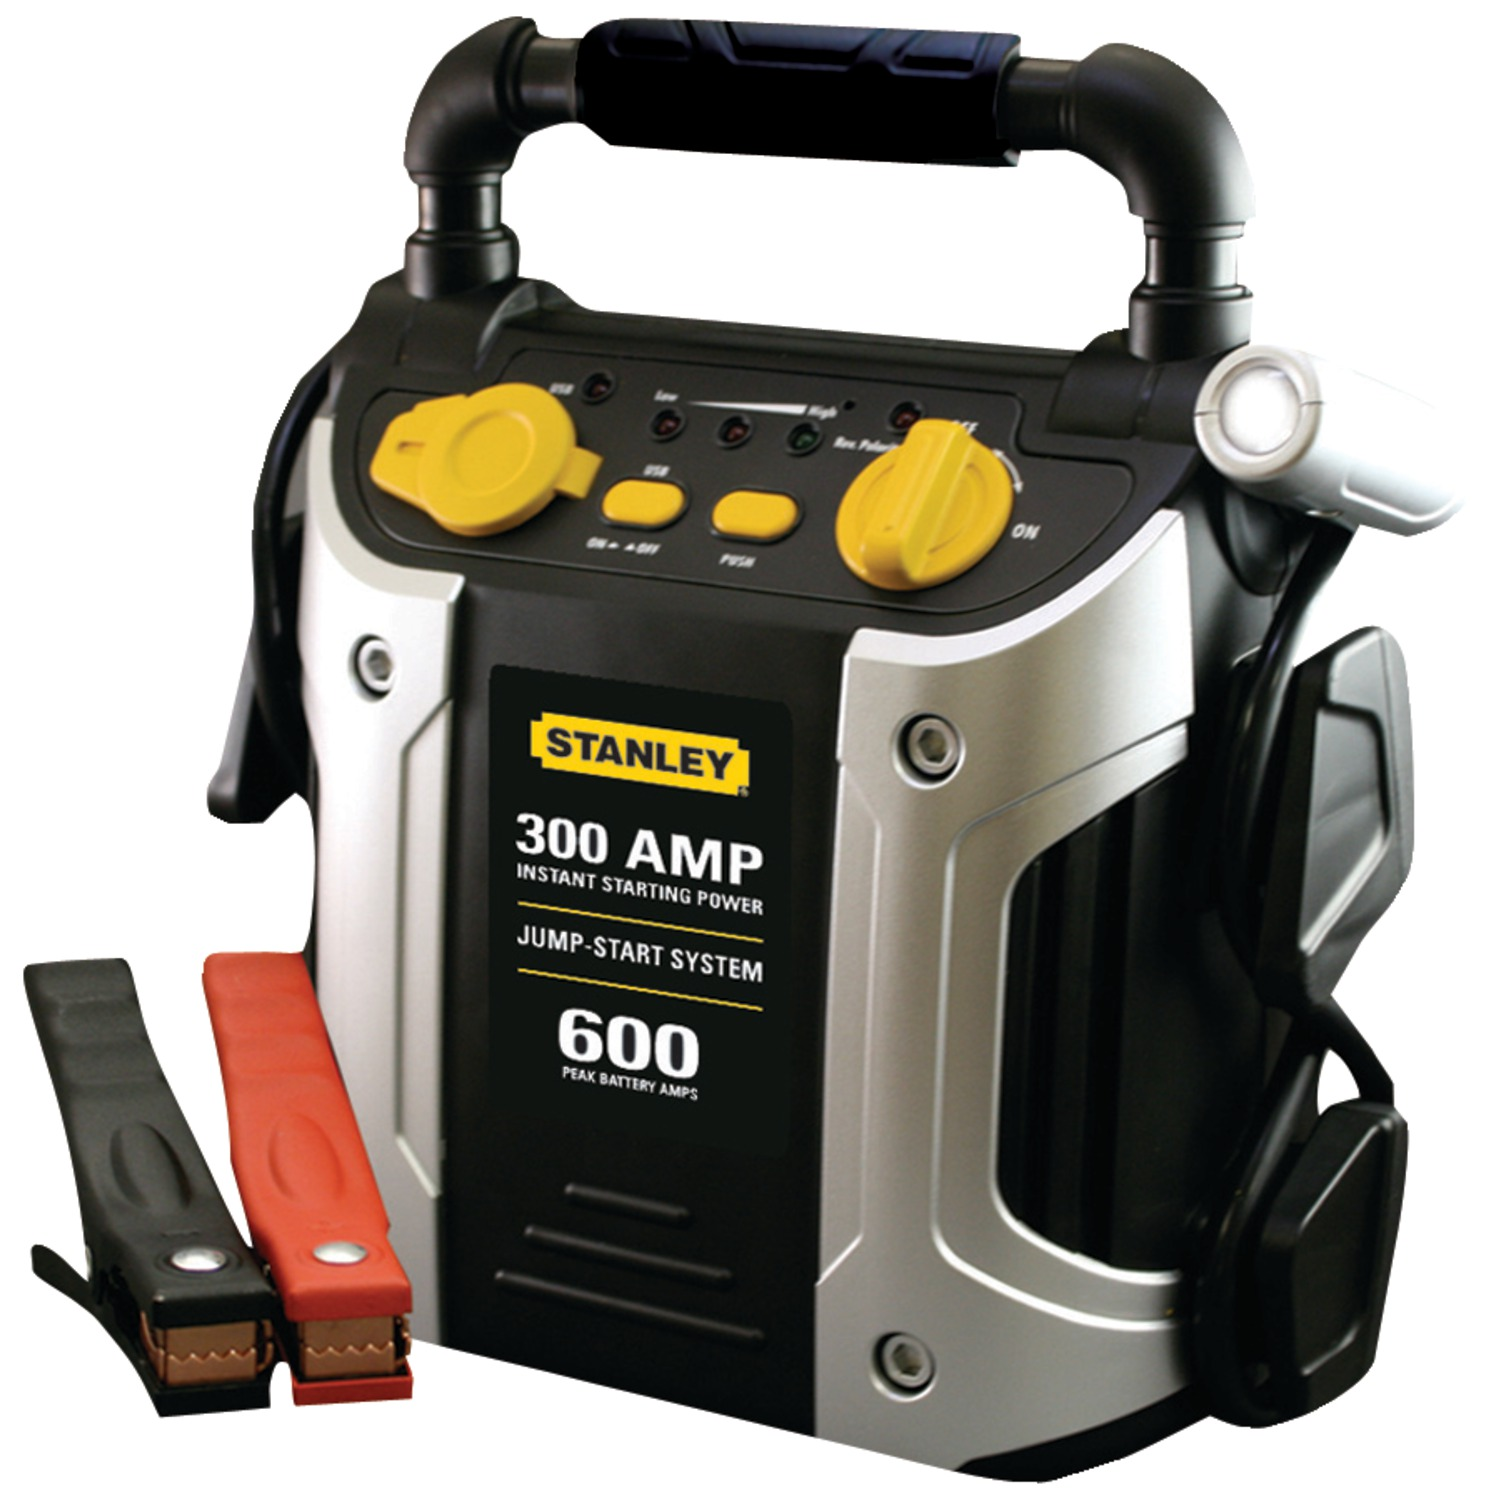 Stanley J309 Jump Starter Peak 600 Amp with LED Light and USB and 12V Ports